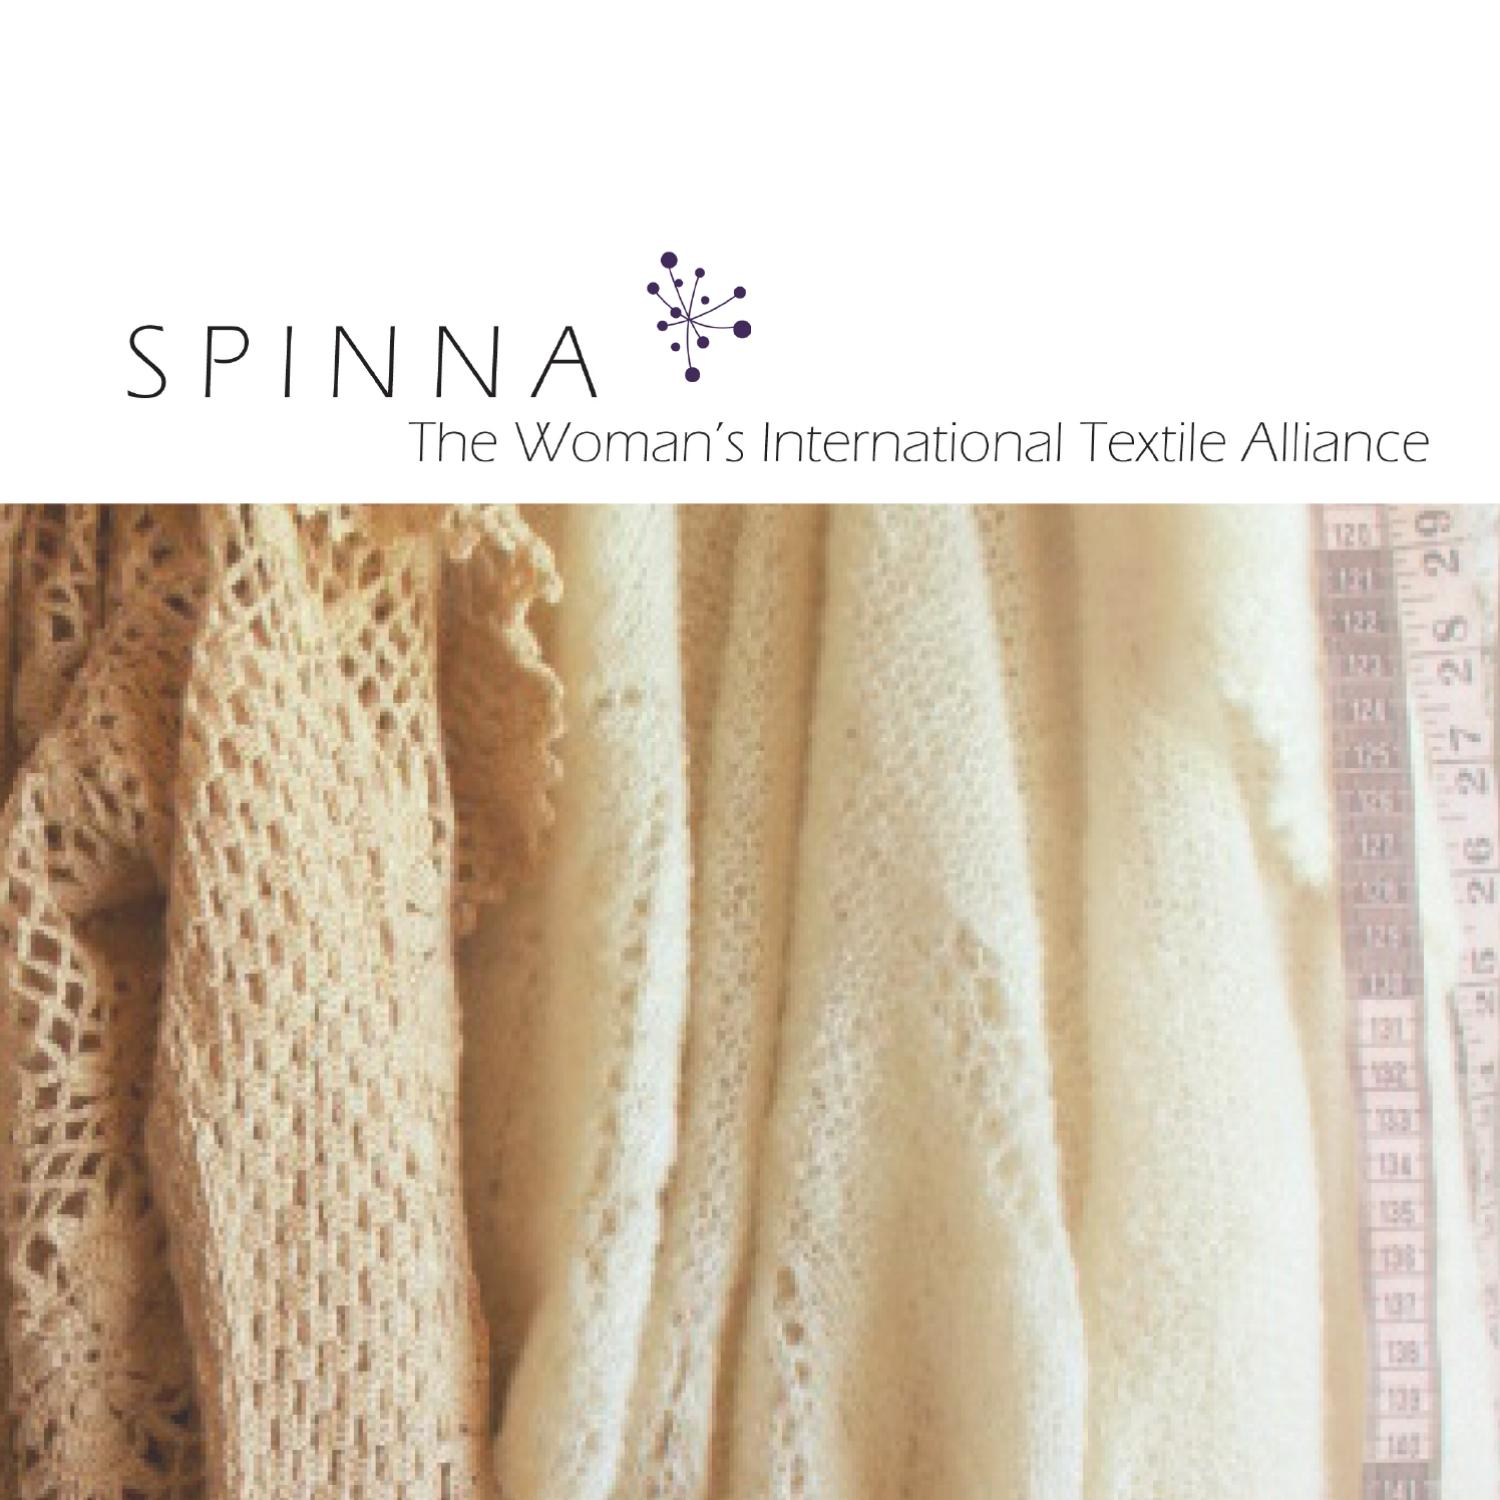 Internship Report Spinna By Janneke Dekker Issuu